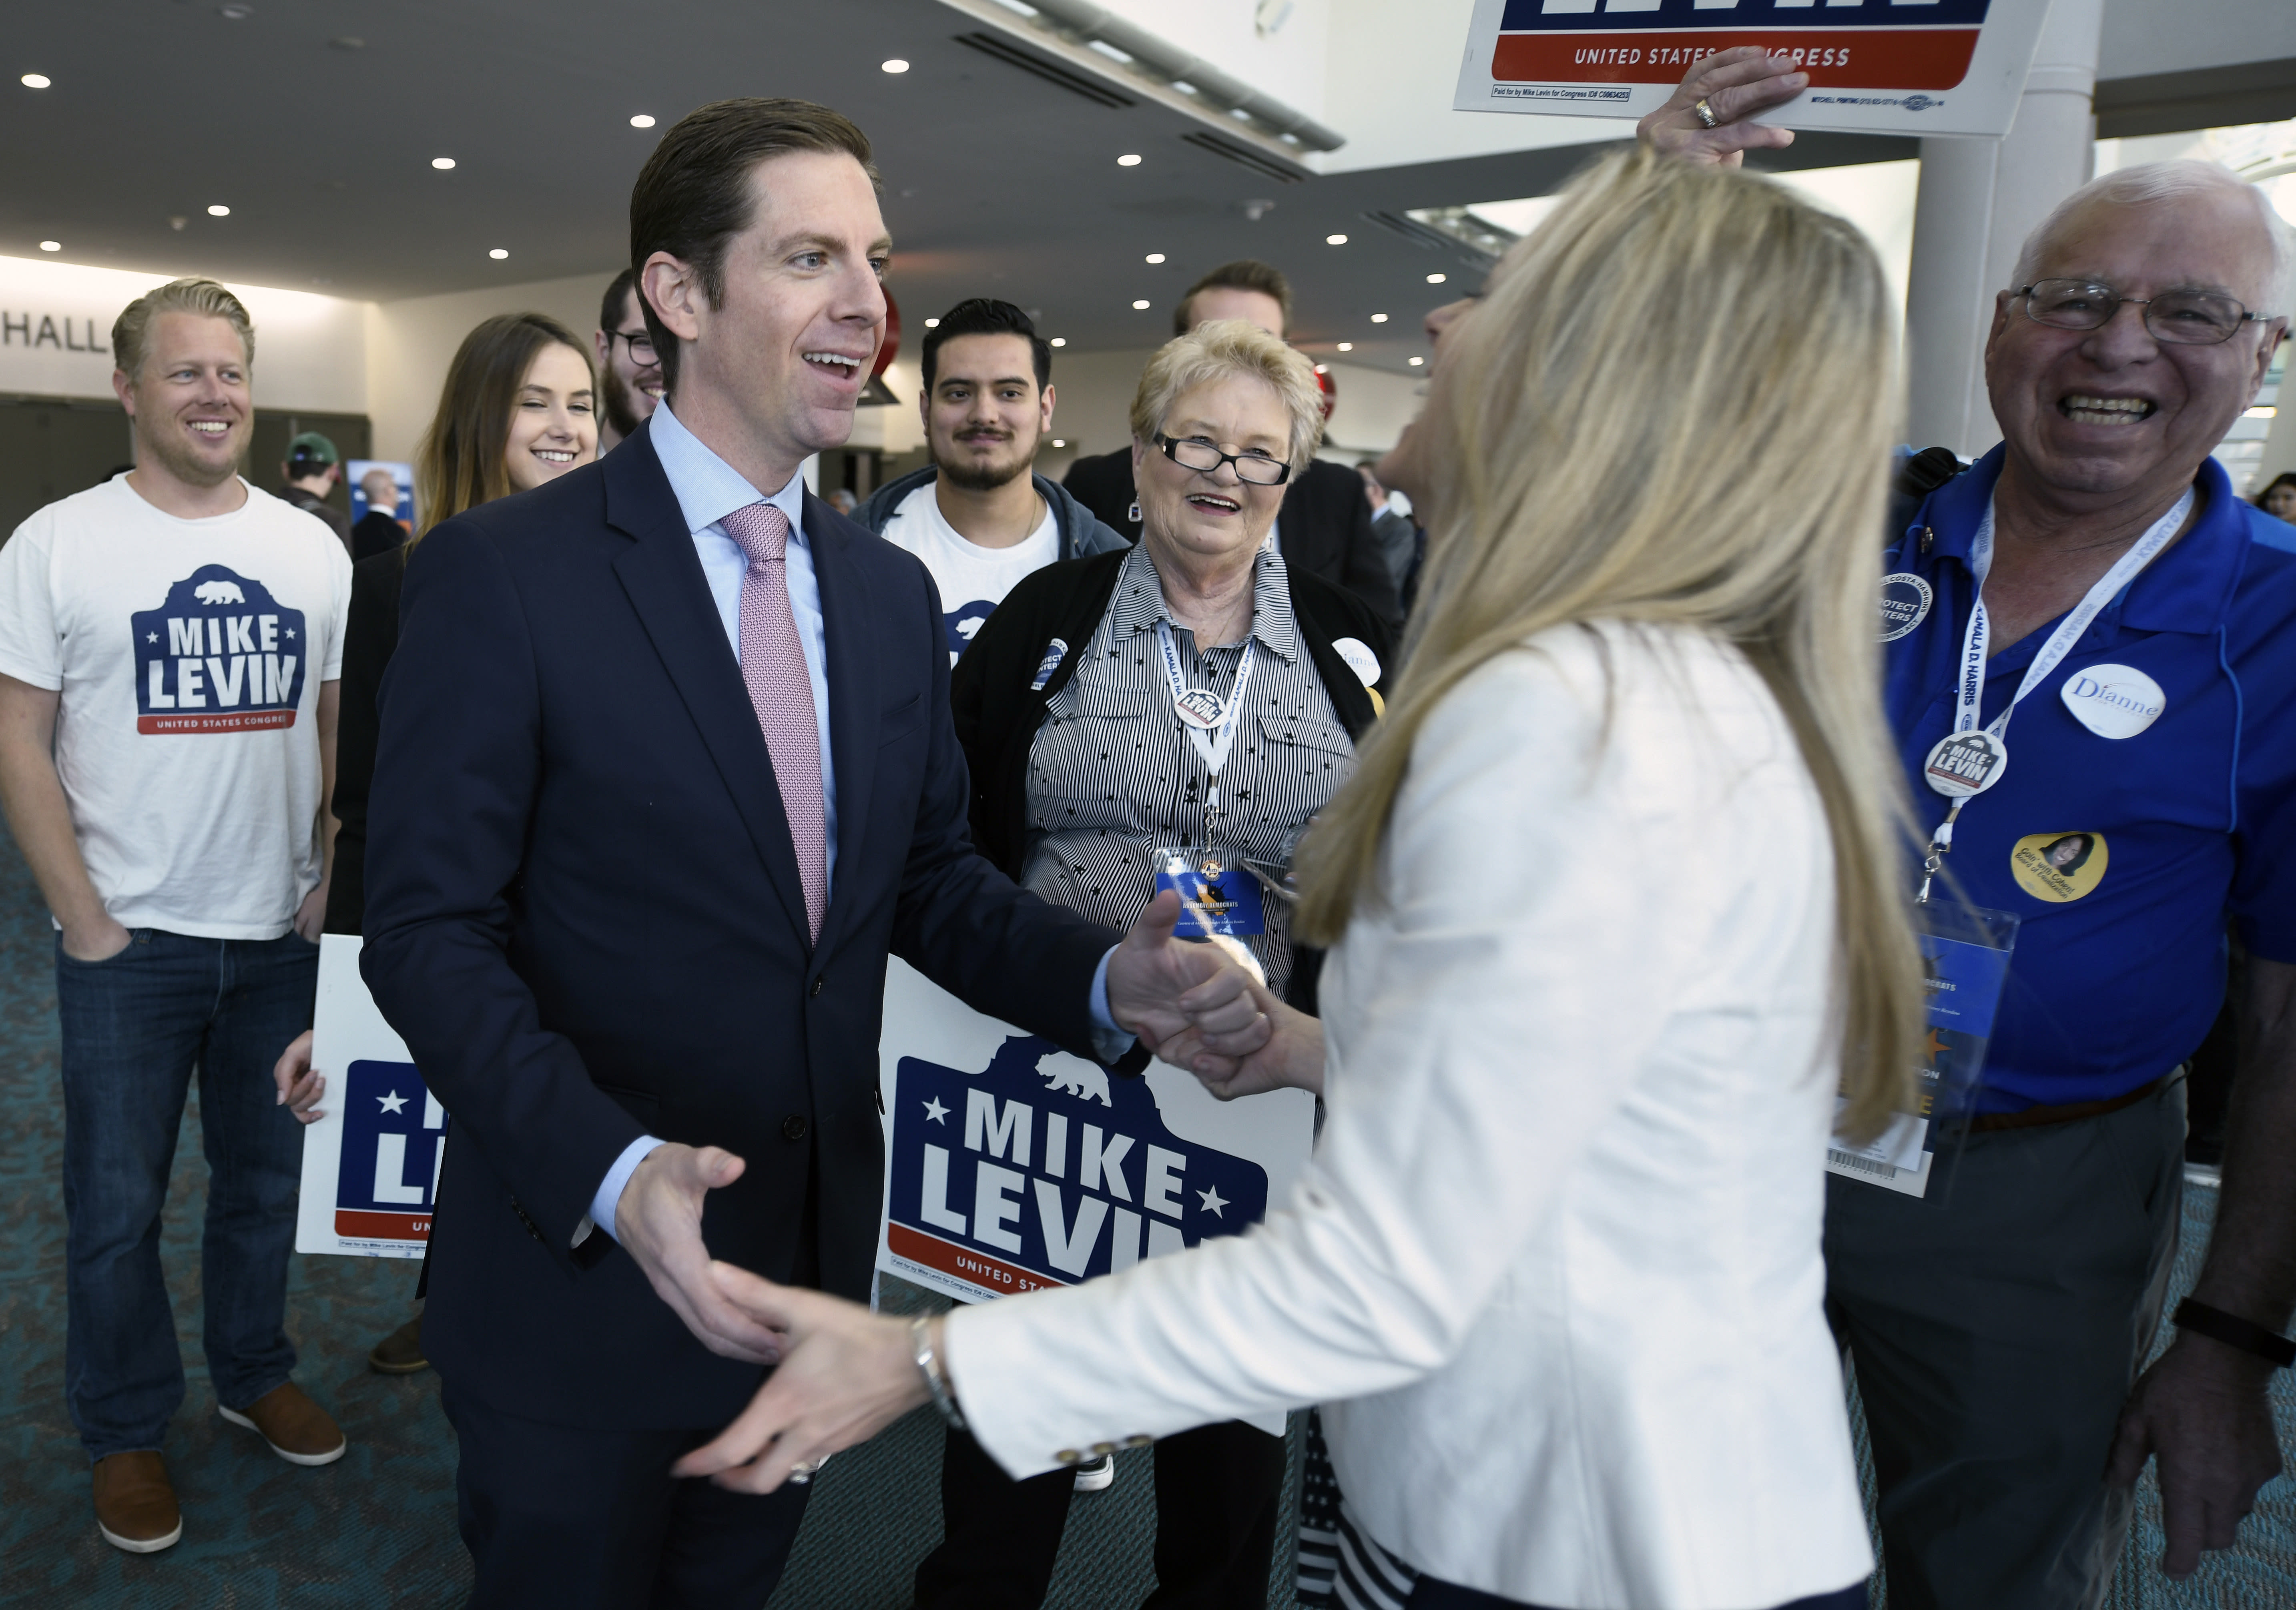 """<span class=""""s1"""">Democratic congressional candidate Mike Levin with his wife, Chrissy Levin, at the 2018 California Democrats State Convention on Feb. 24 in San Diego. (Photo: Denis Poroy/AP)</span>"""